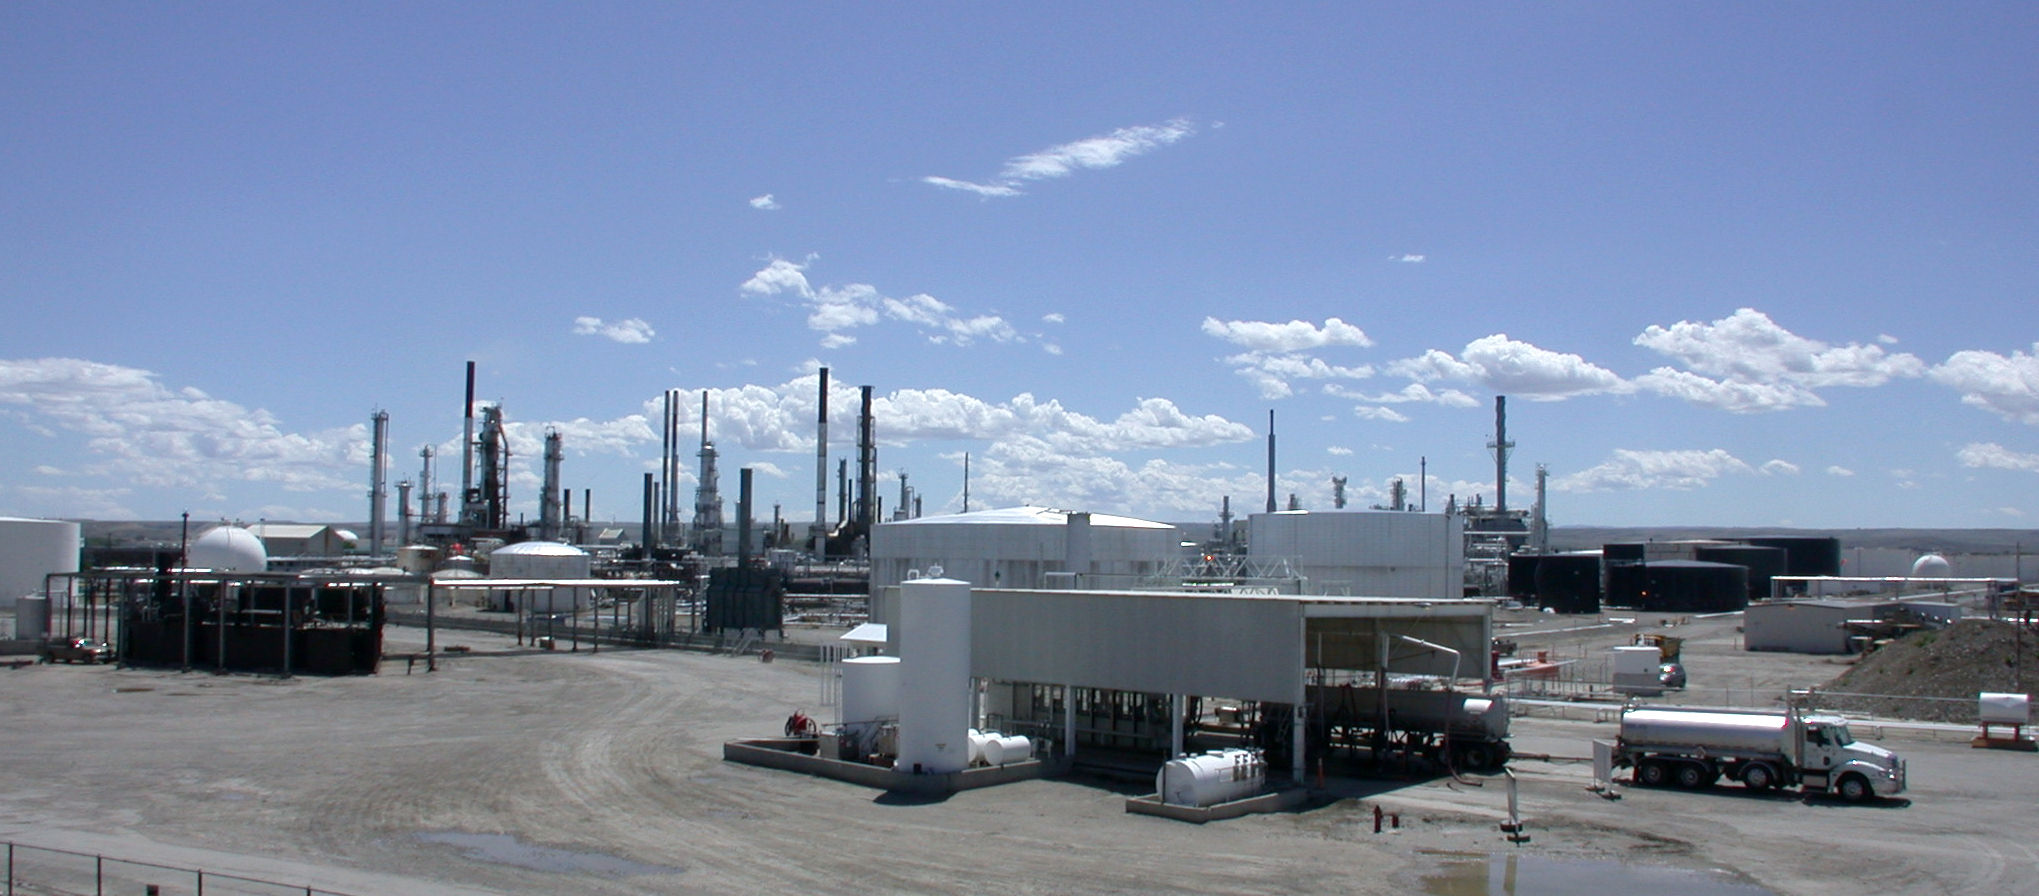 File:Oil refinery in Billings, MT.jpg - Wikimedia Commons